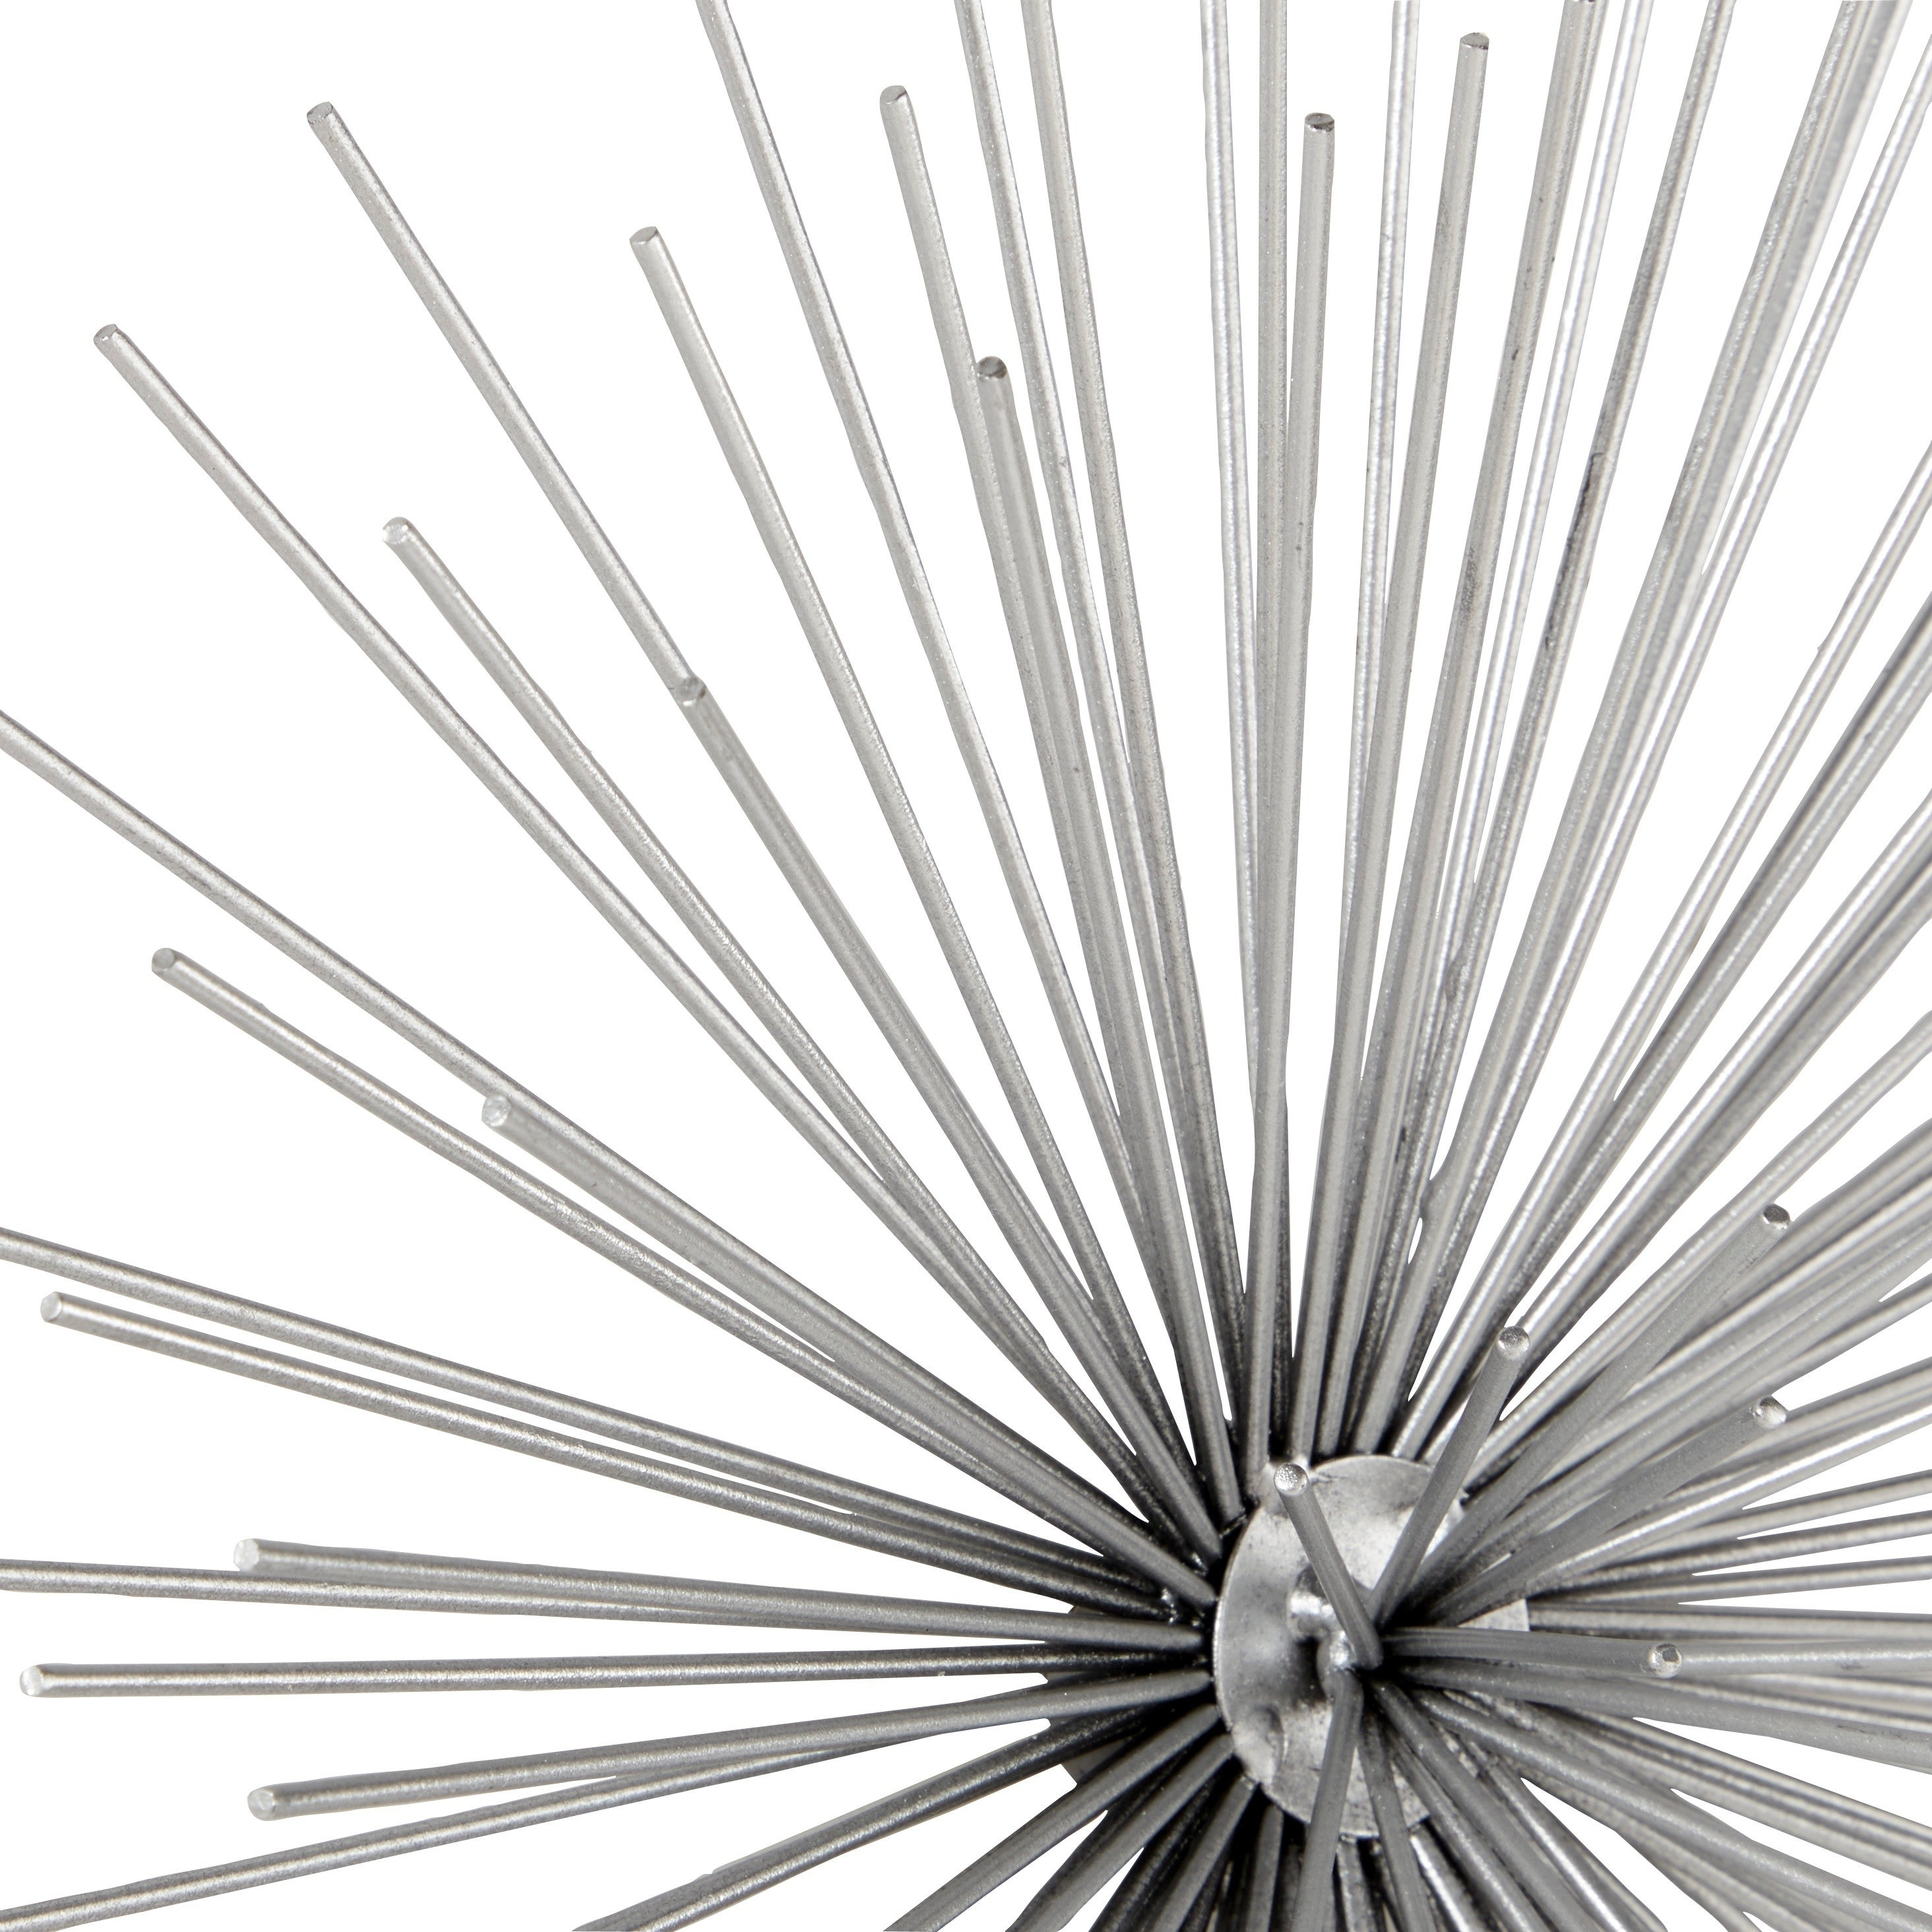 Contemporary 3D Silver Metal Starburst Wall Decor Sculptures Set Of 3 with Set of 3 Contemporary 6, 9, and 11 Inch Gold Tin Starburst Sculptures (Image 8 of 30)